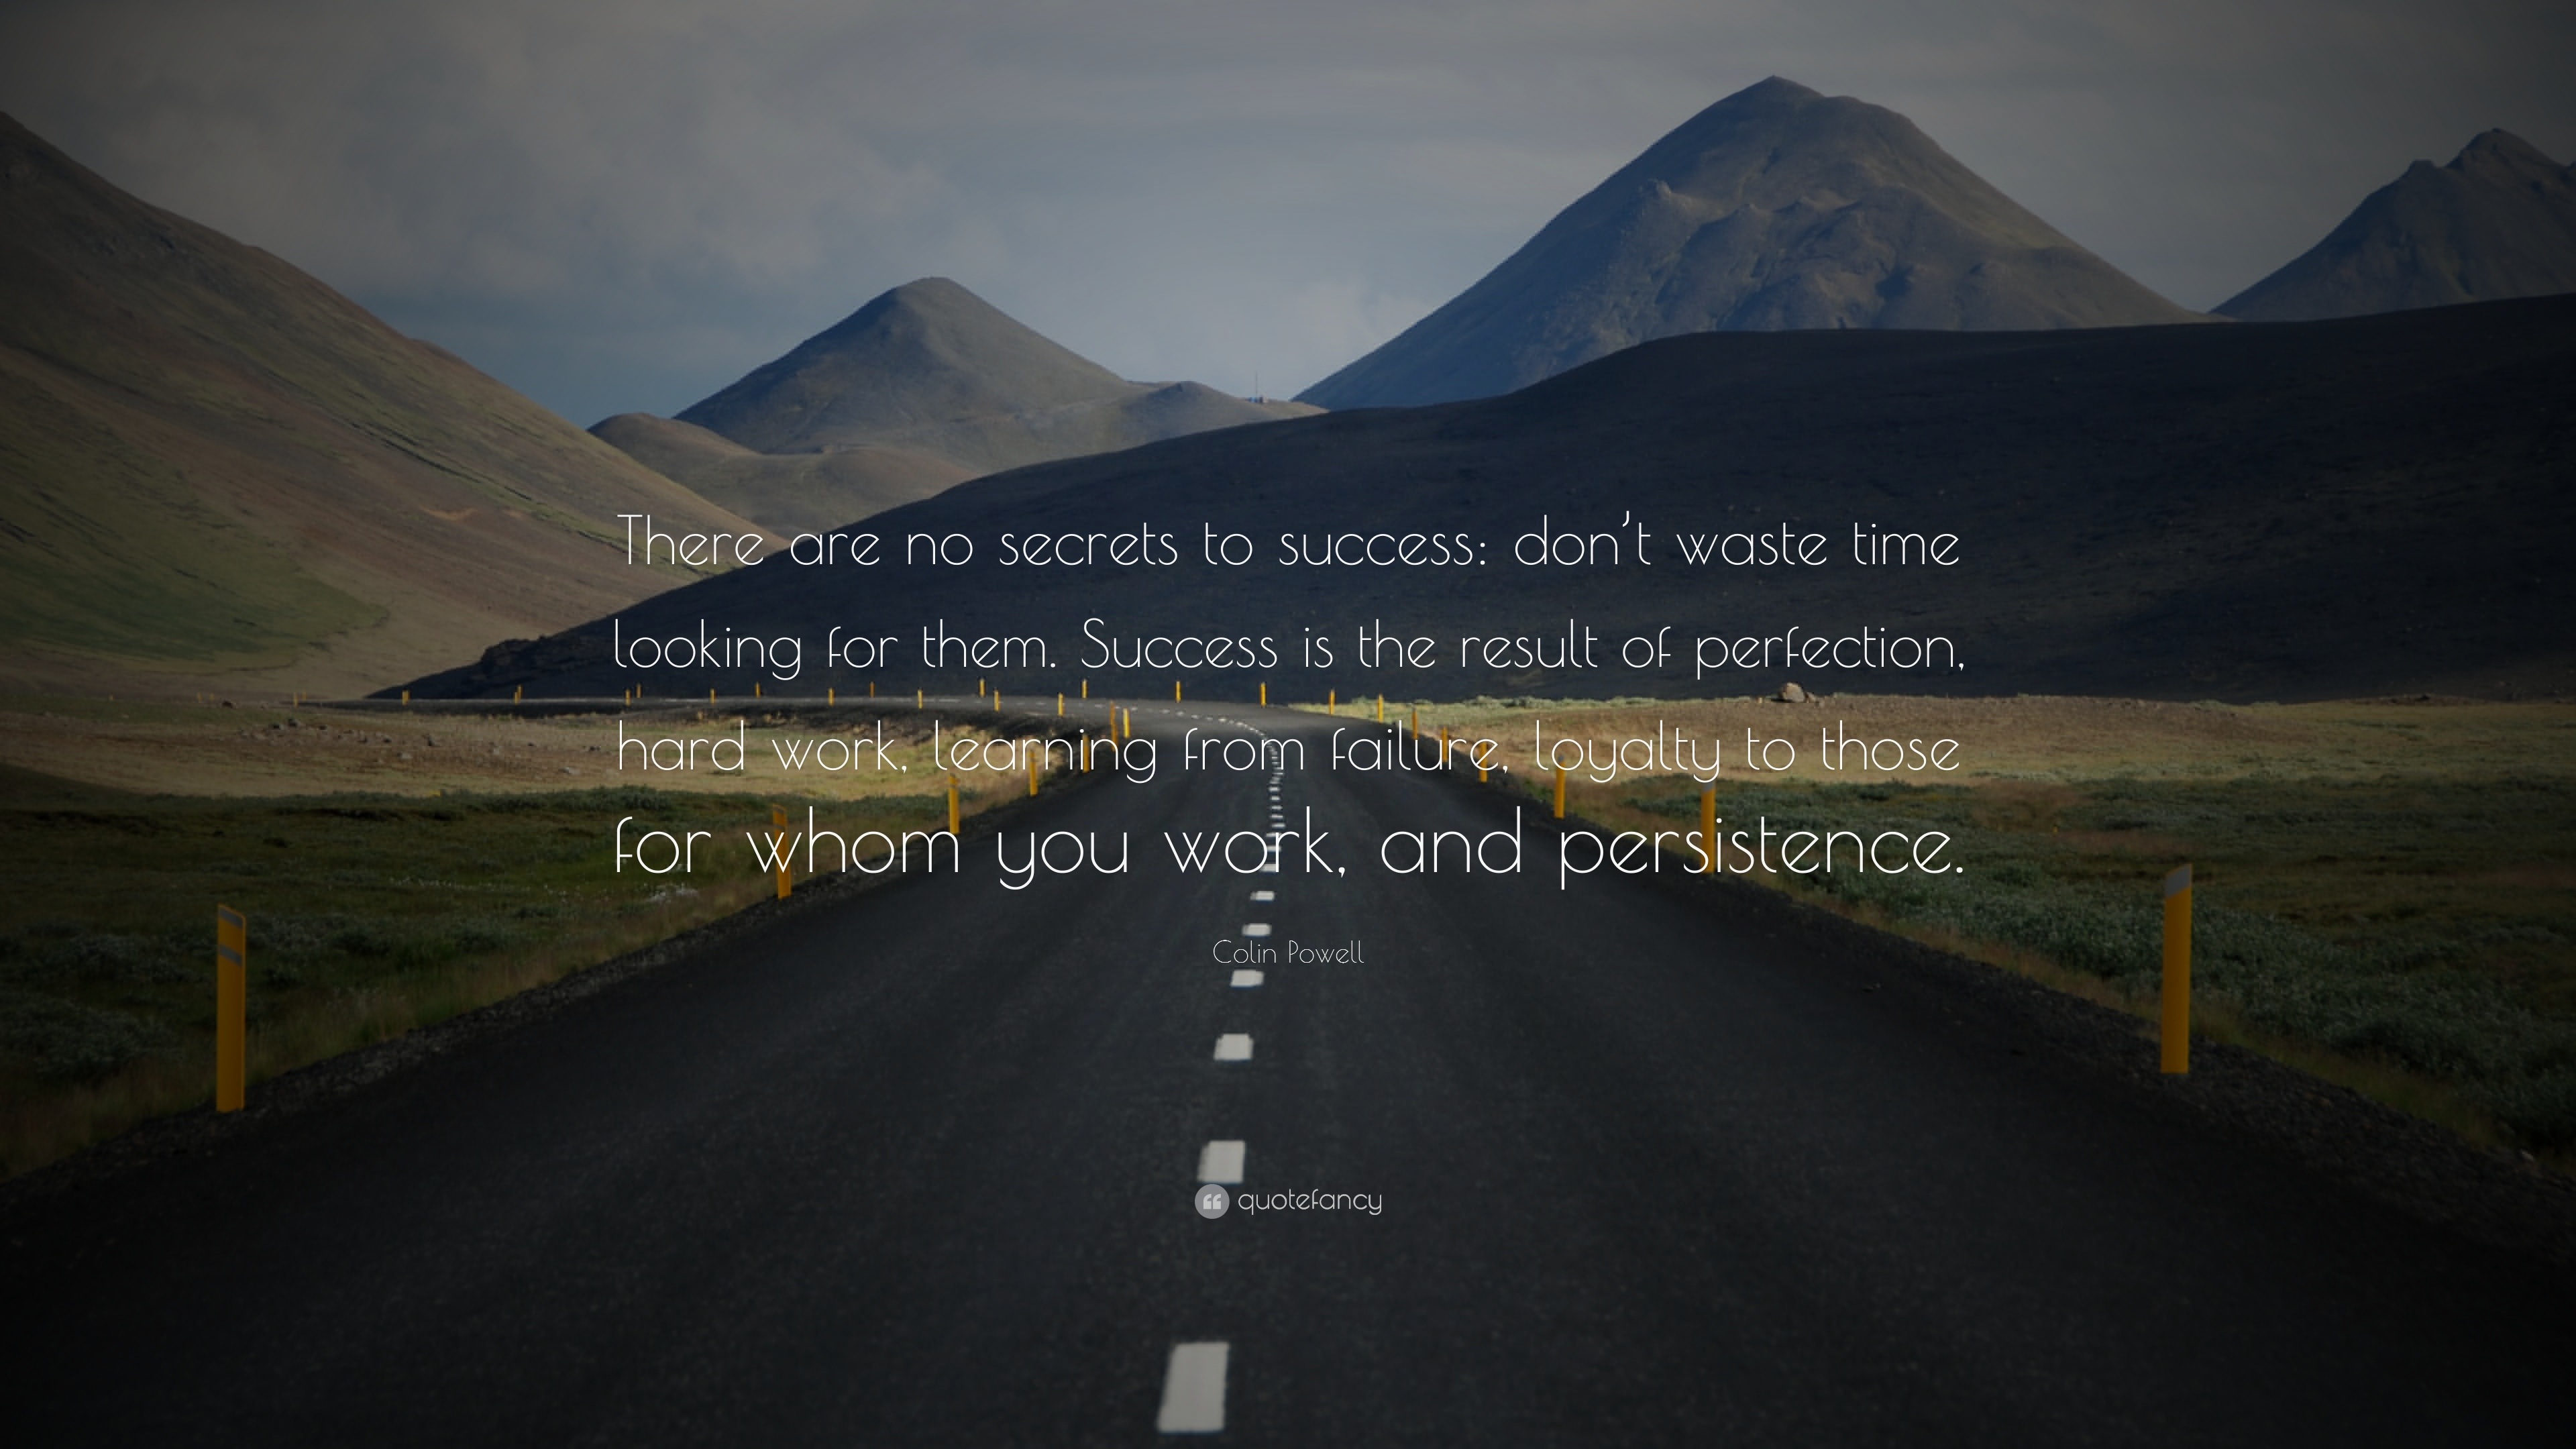 success quotes quotefancy success quotes there are no secrets to success don t waste time